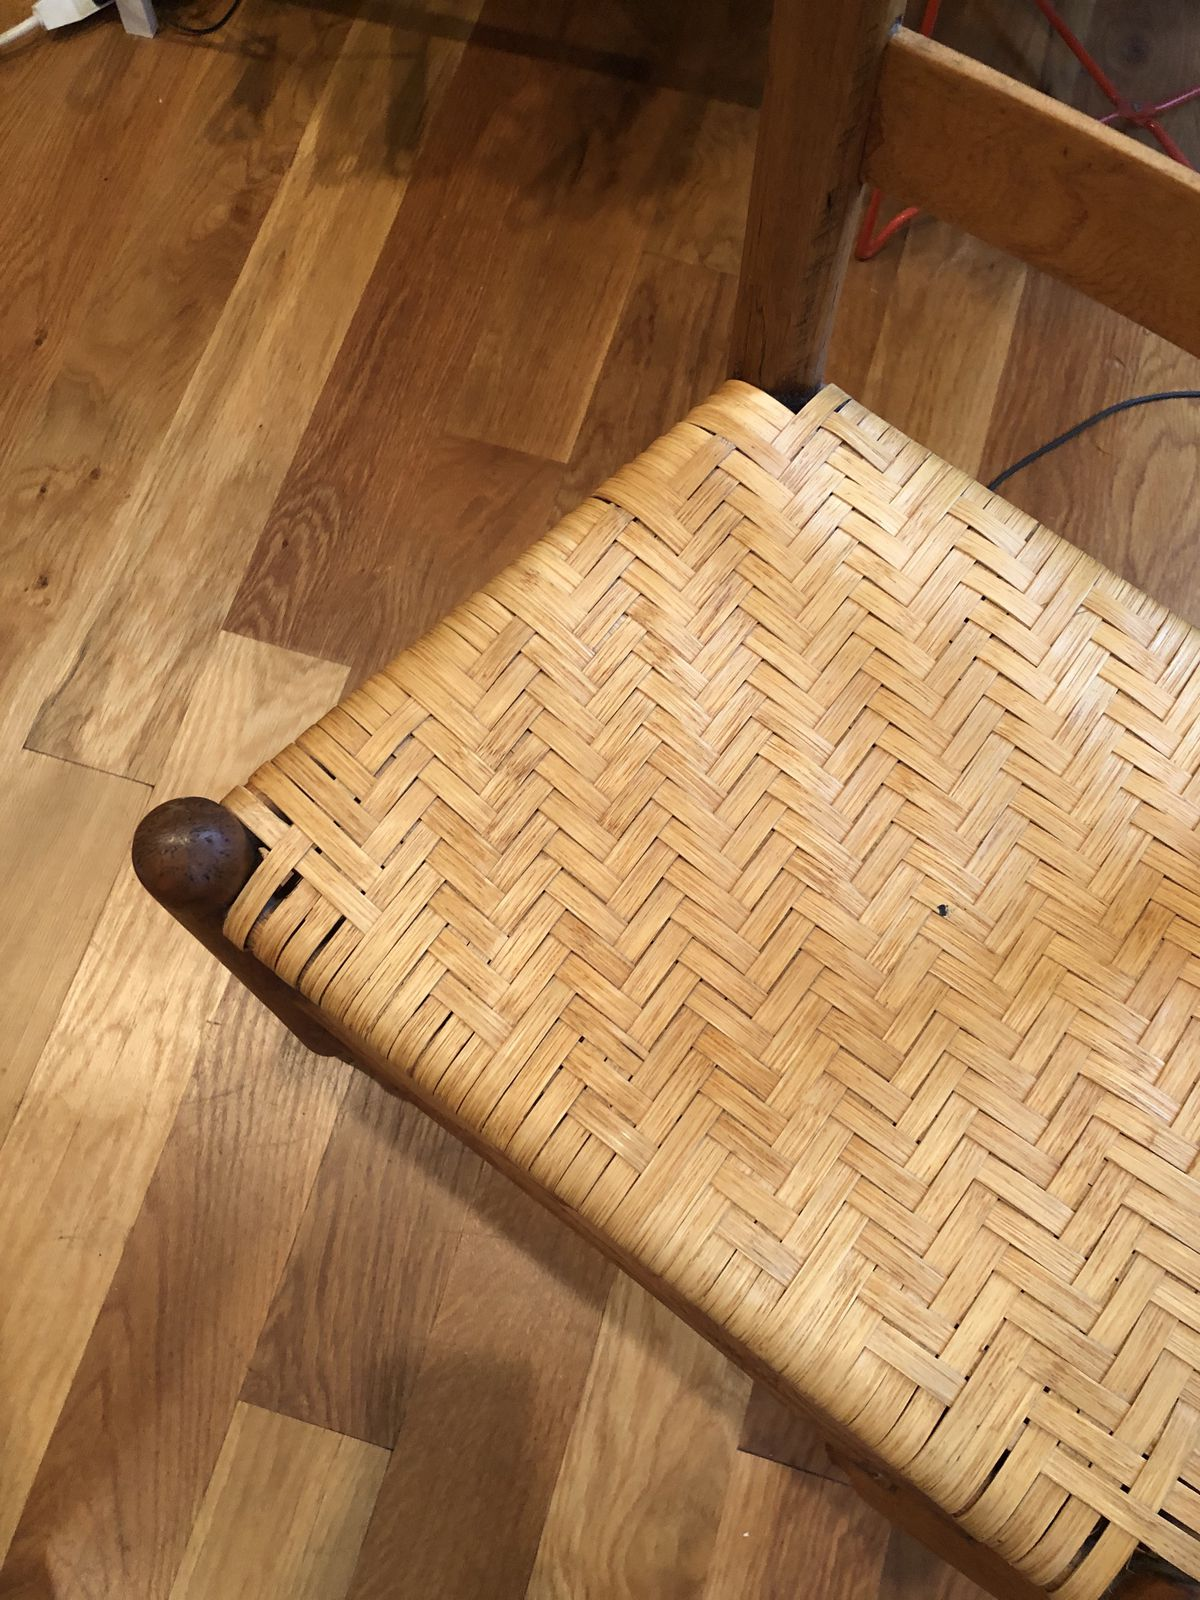 Close-up view of woven cane chair.